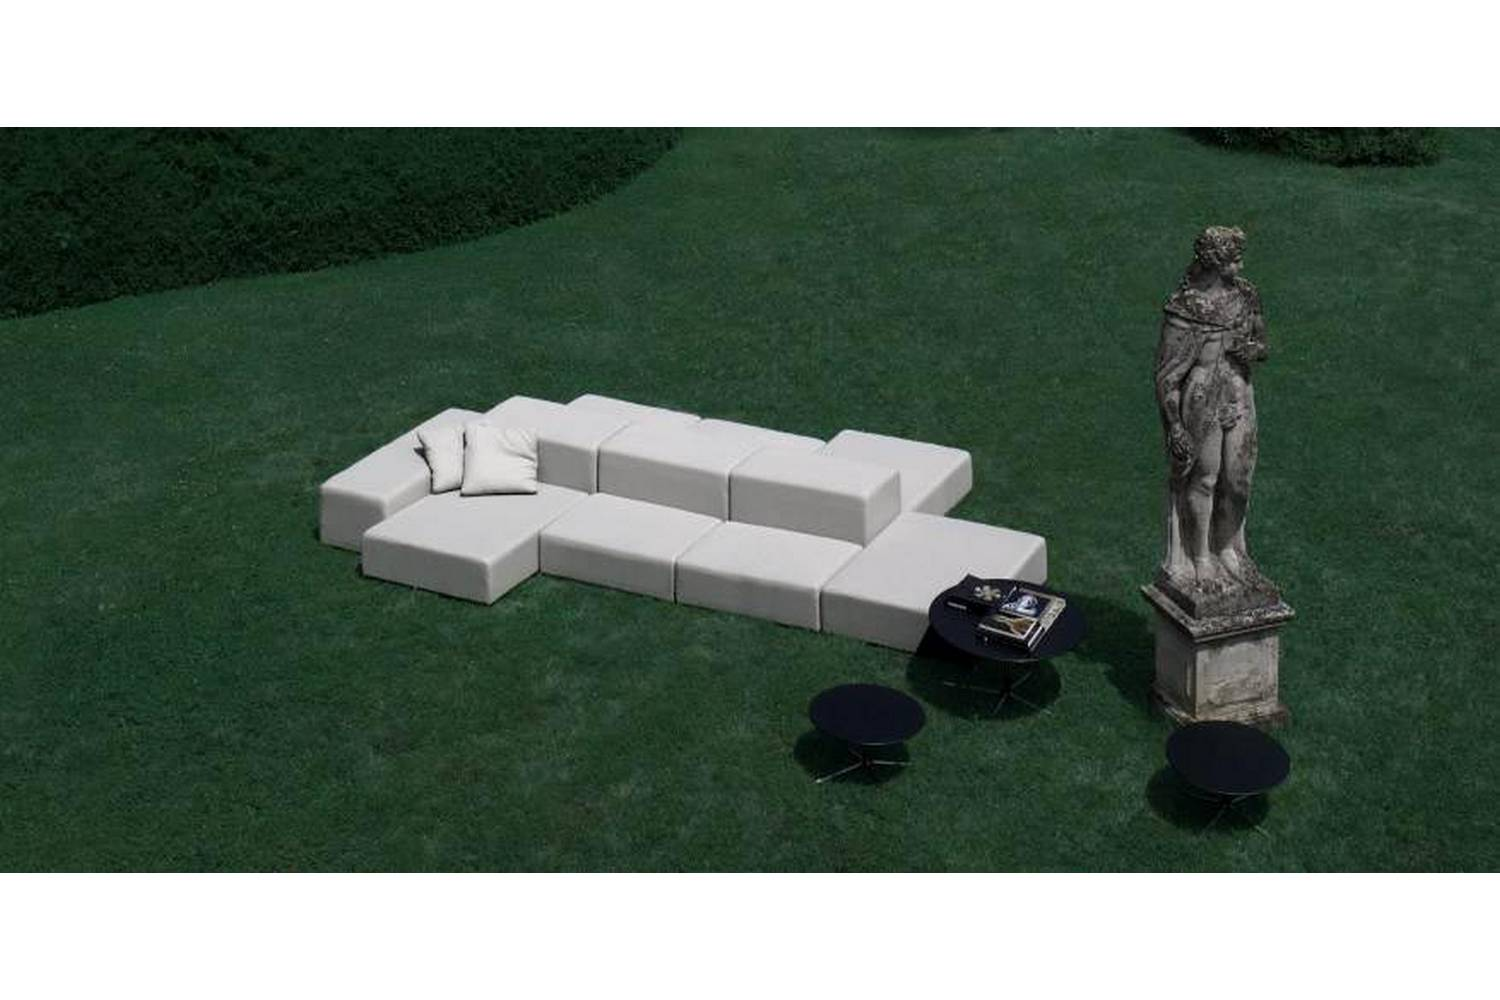 Living Divani The Wall Sofa Extra Wall Outdoor Sofa By Piero Lissoni For Living Divani Space